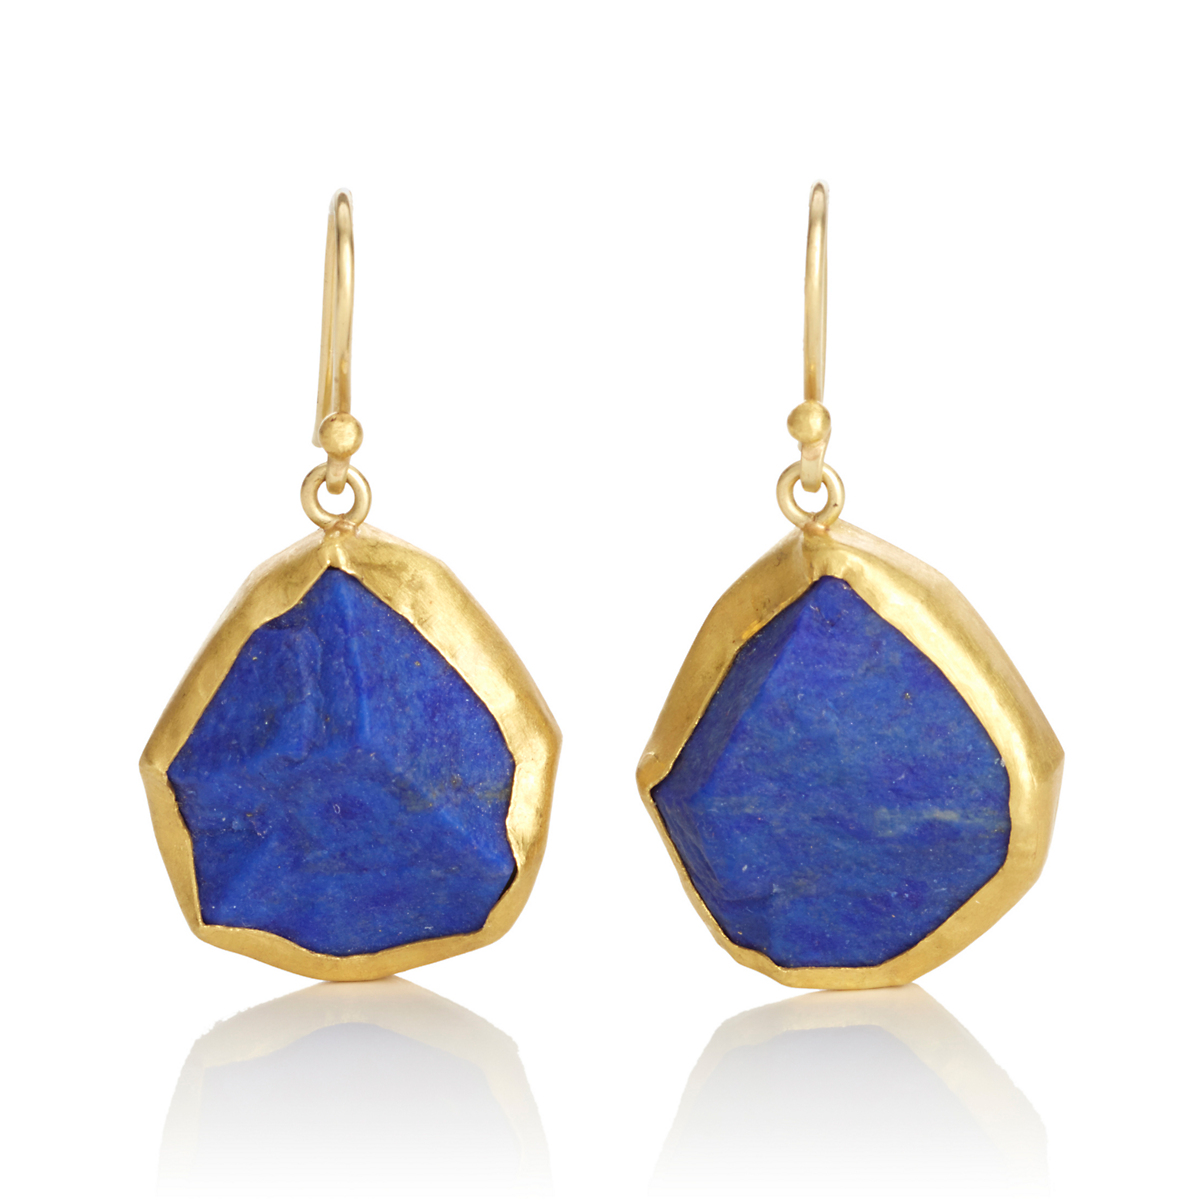 Petra Class Rough Lapis Drop Earrings